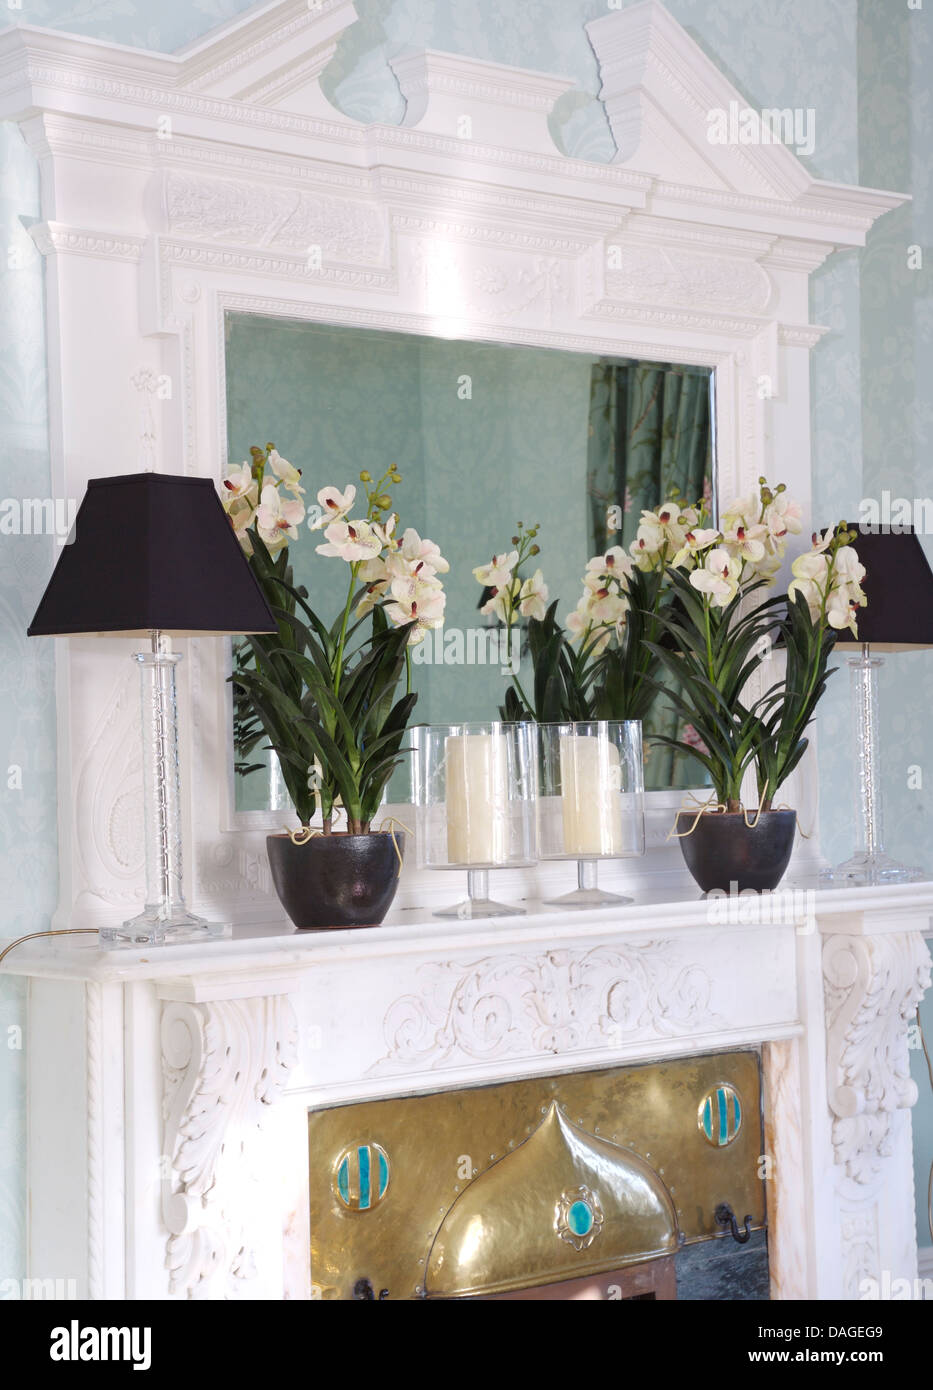 Close Up Of Ornate White Mirror Above Mantelpiece With Black Lamps